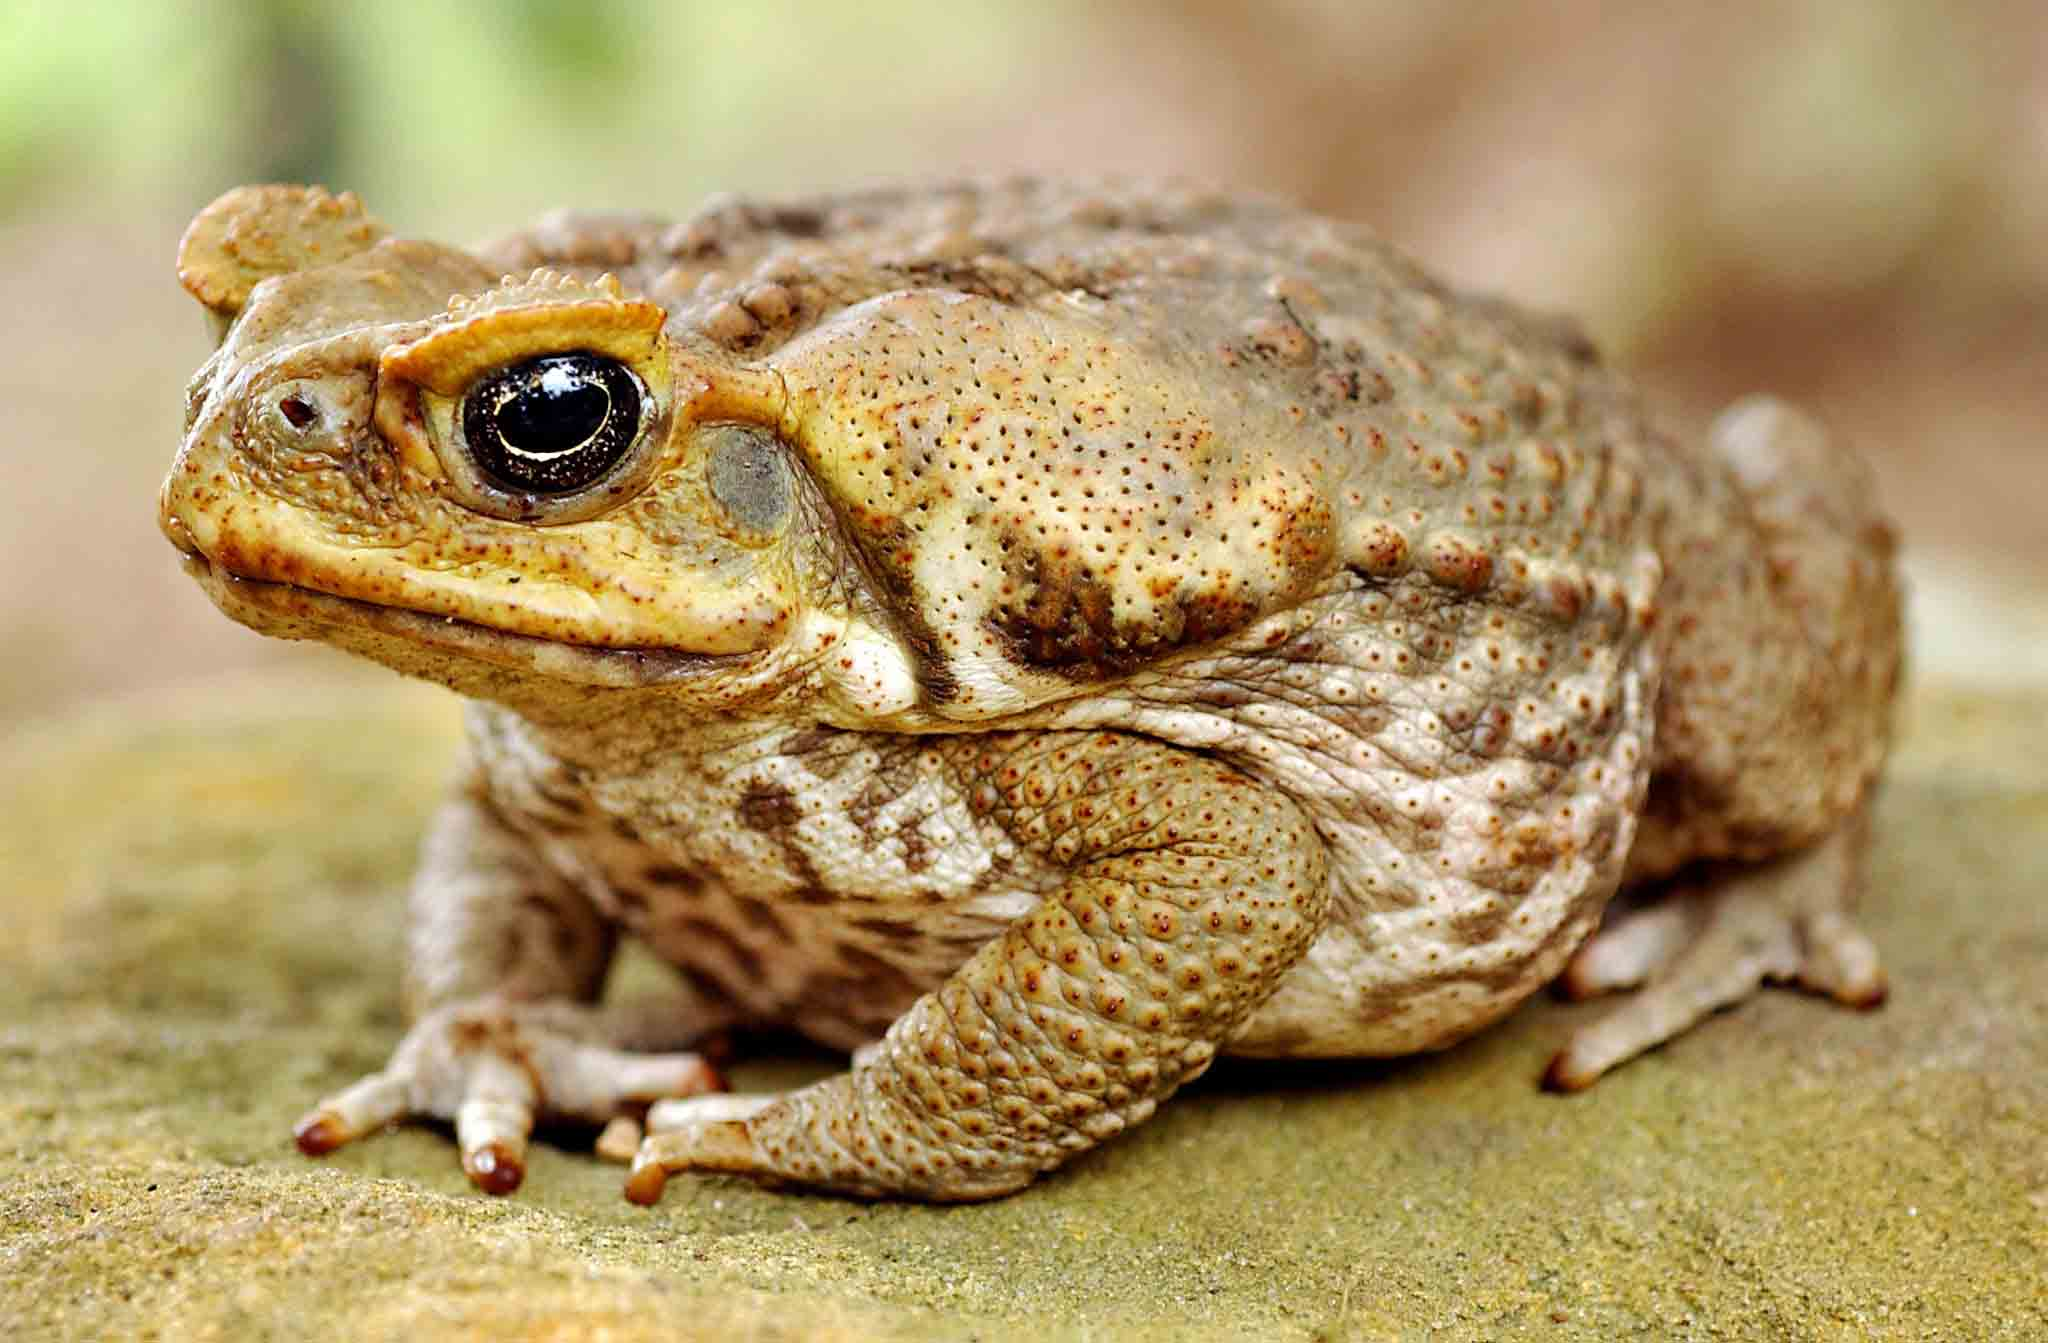 Cane toad animals wallpapers